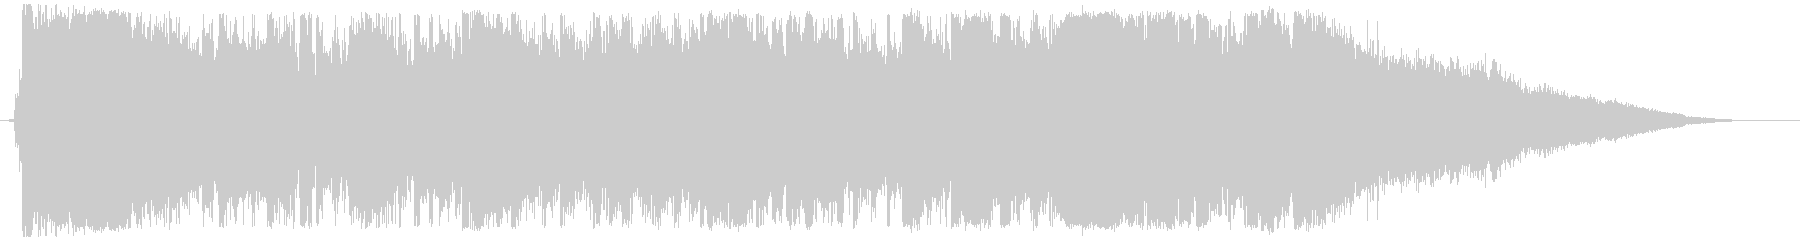 Luxurious ending of Disney-style waltz's unreproduced waveform